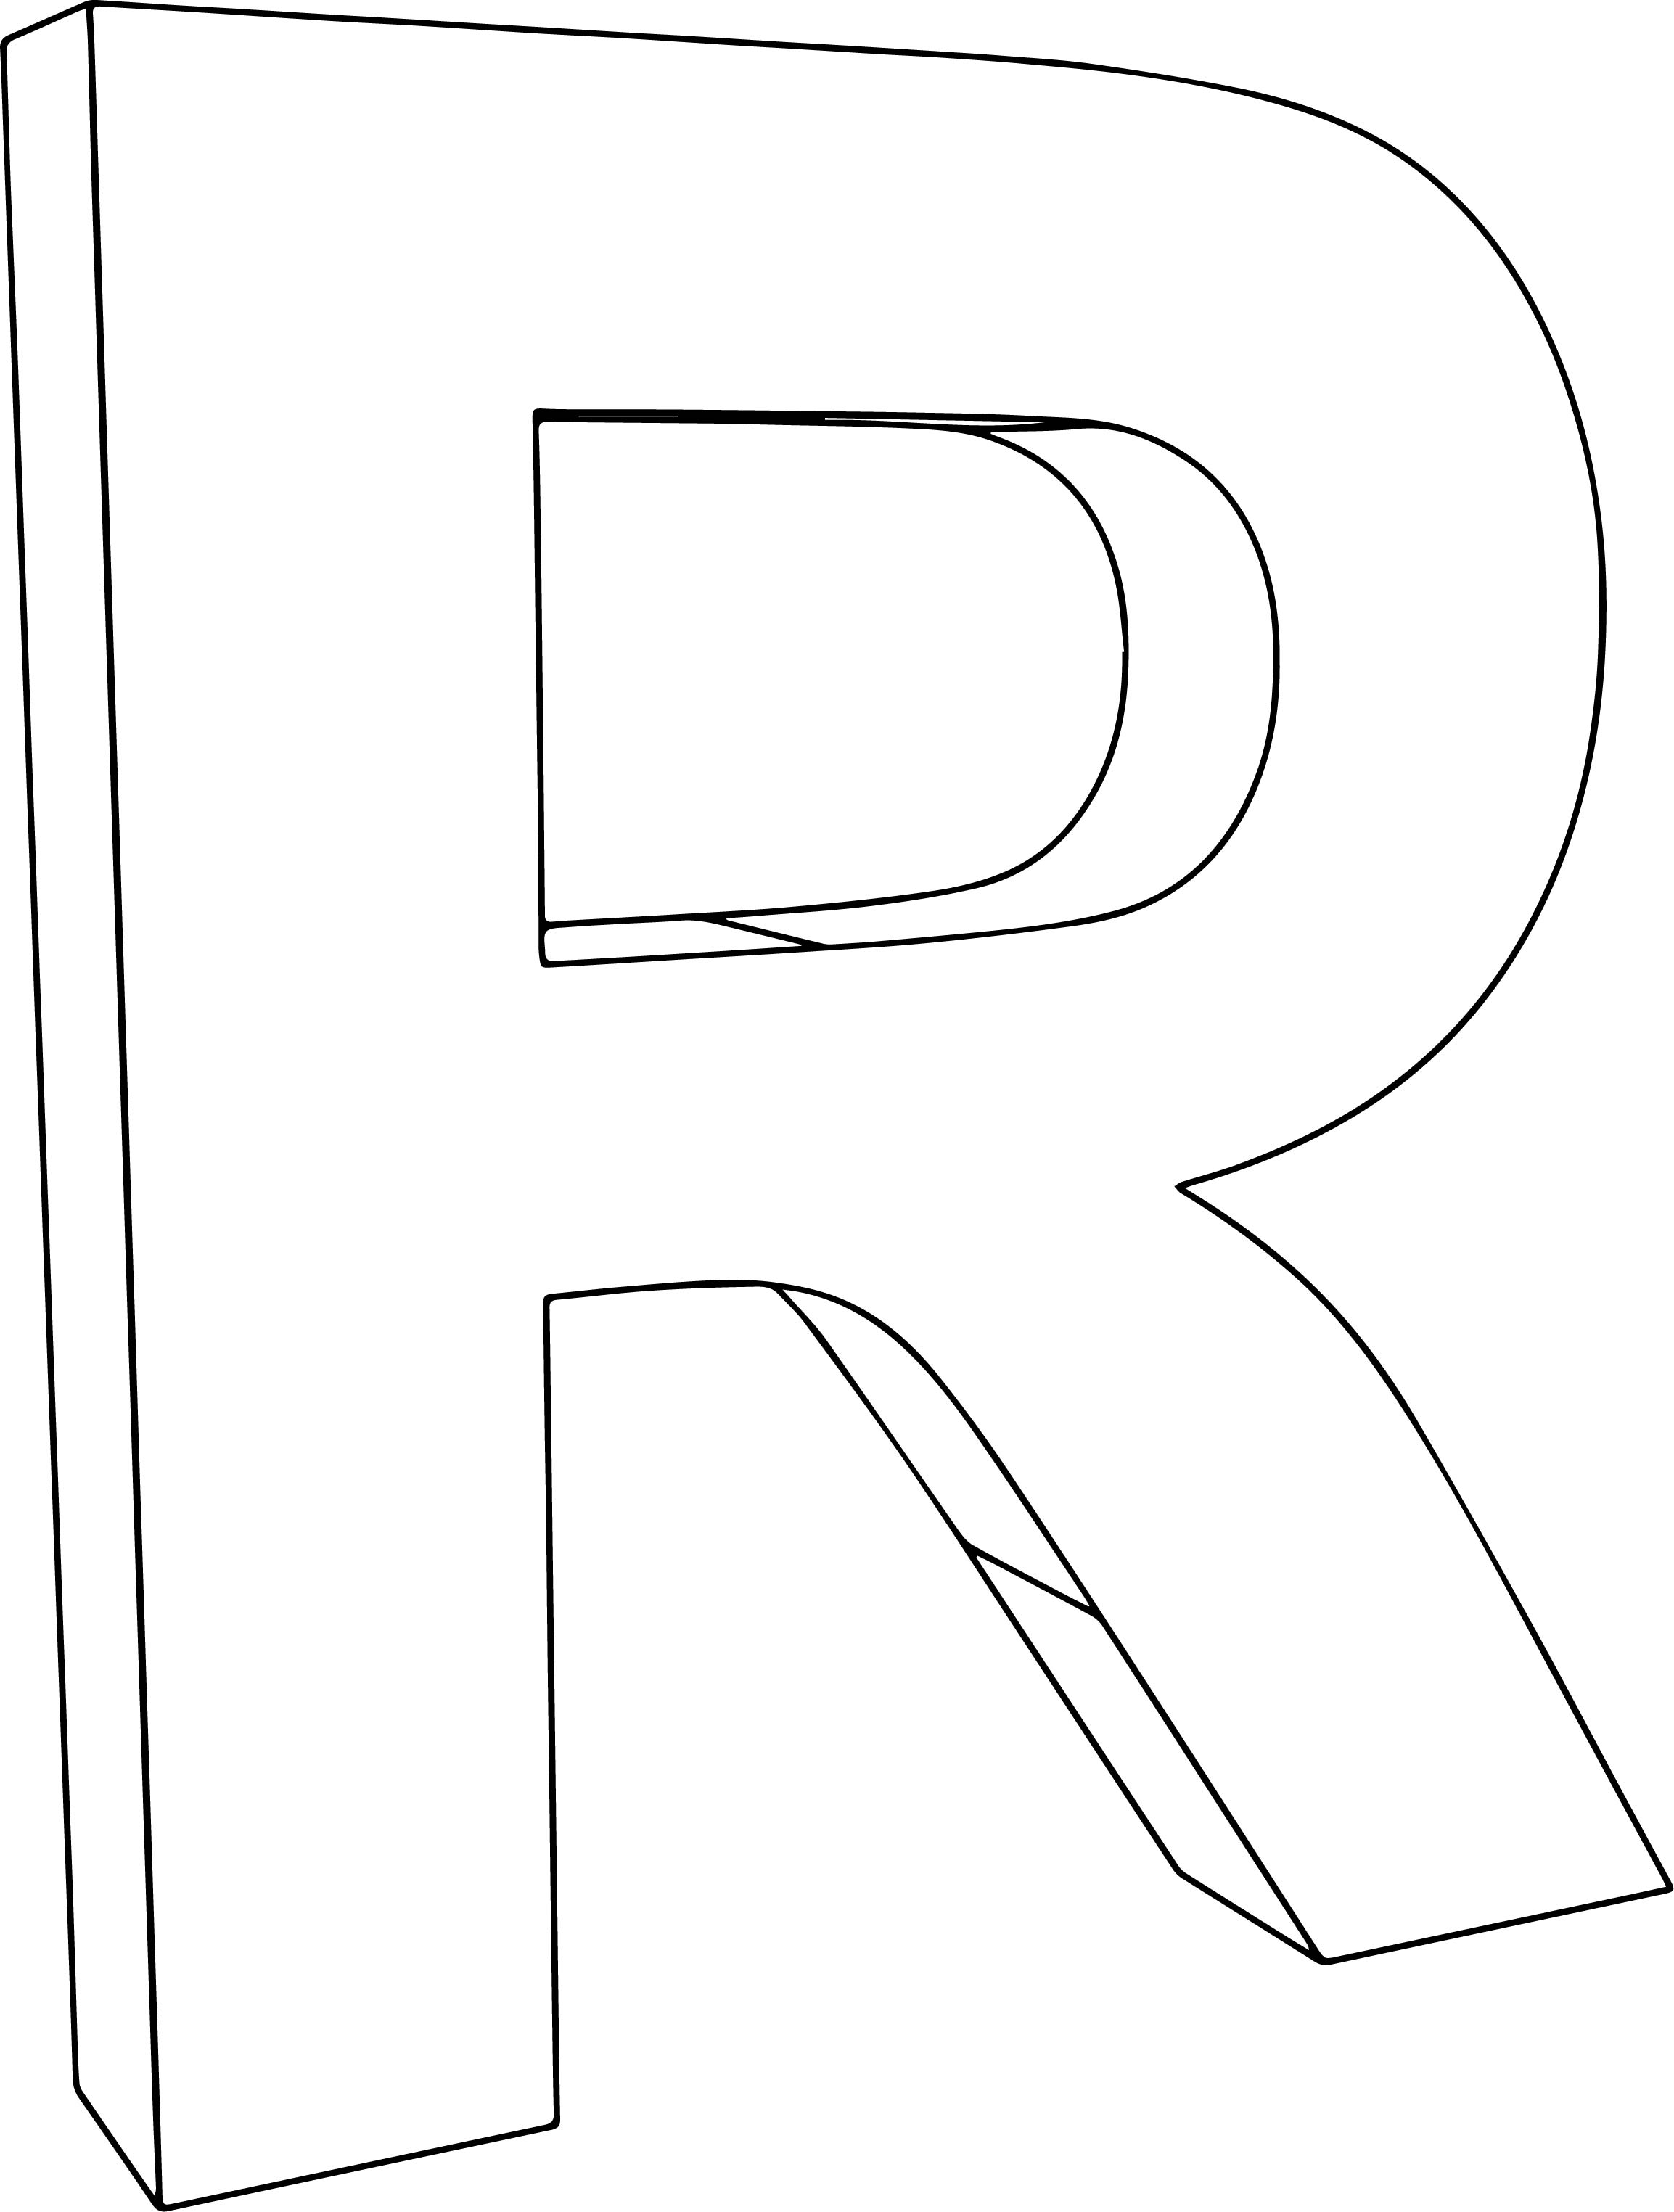 3d R Character Coloring Page